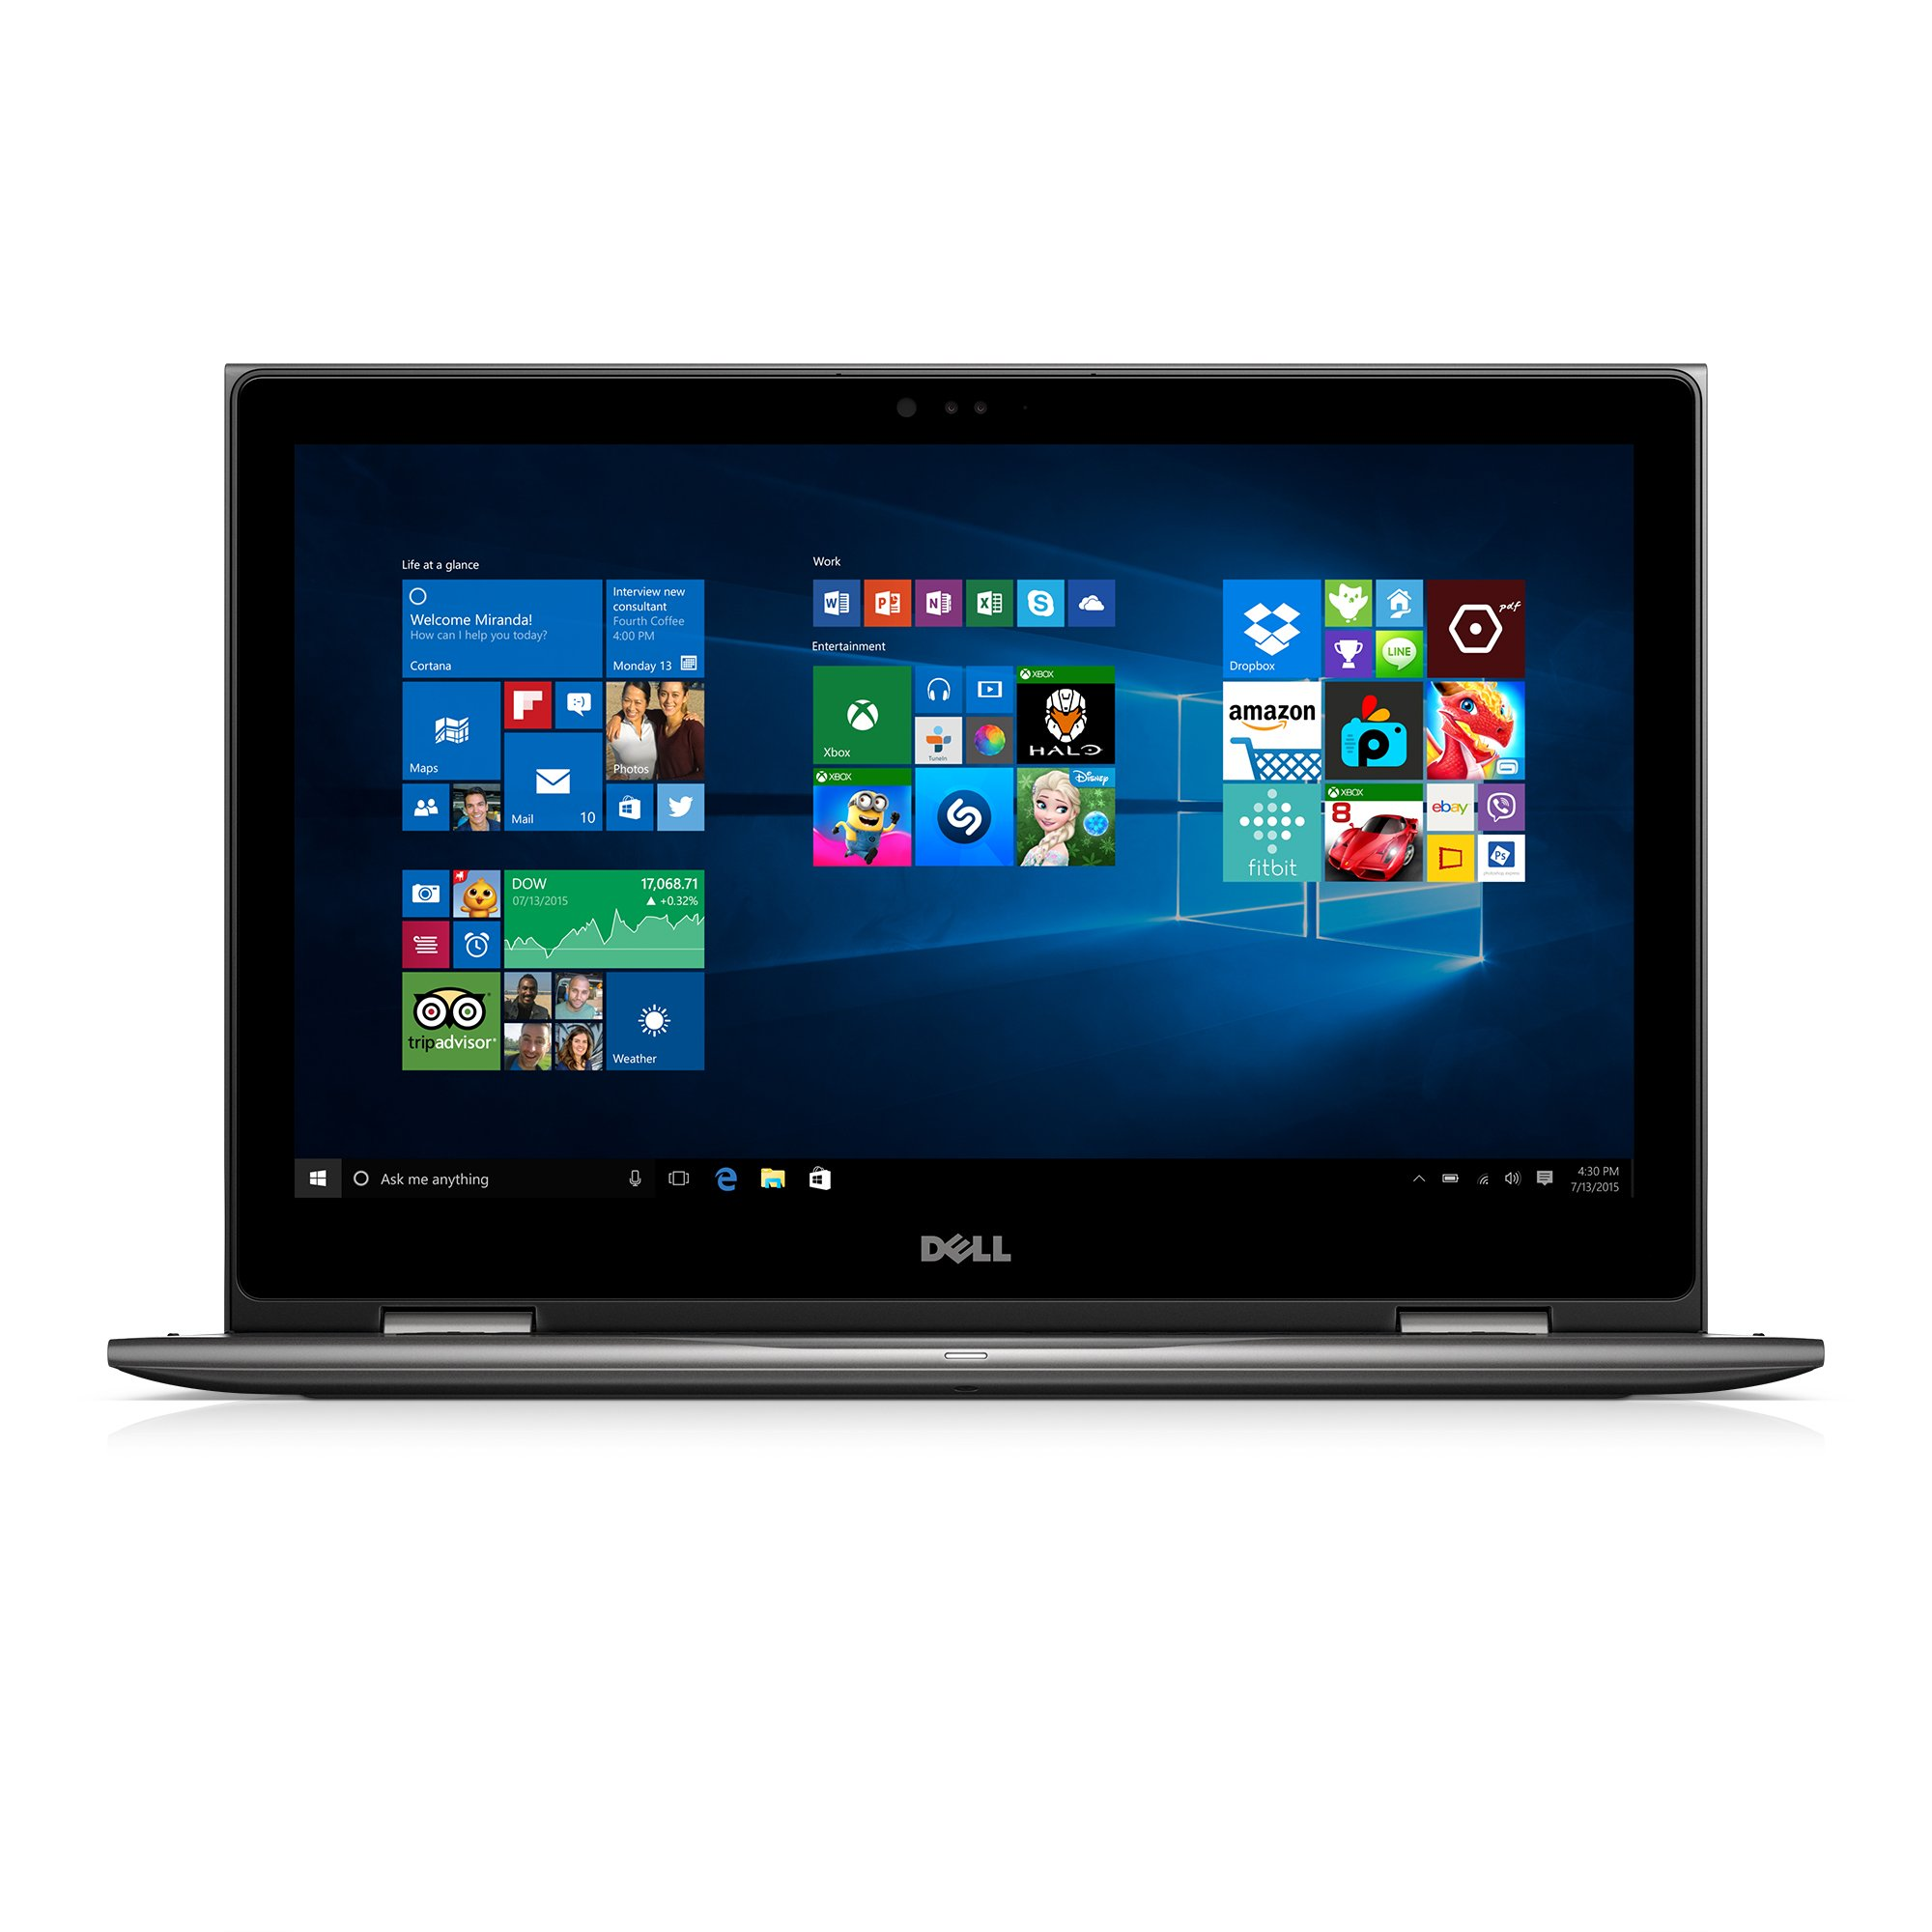 Dell Inspiron i5578-2550GRY 15.6'' FHD 2-In-1 Laptop (7th Generation Intel Core i7, 8GB, 1TB HDD) Microsoft Signature Image